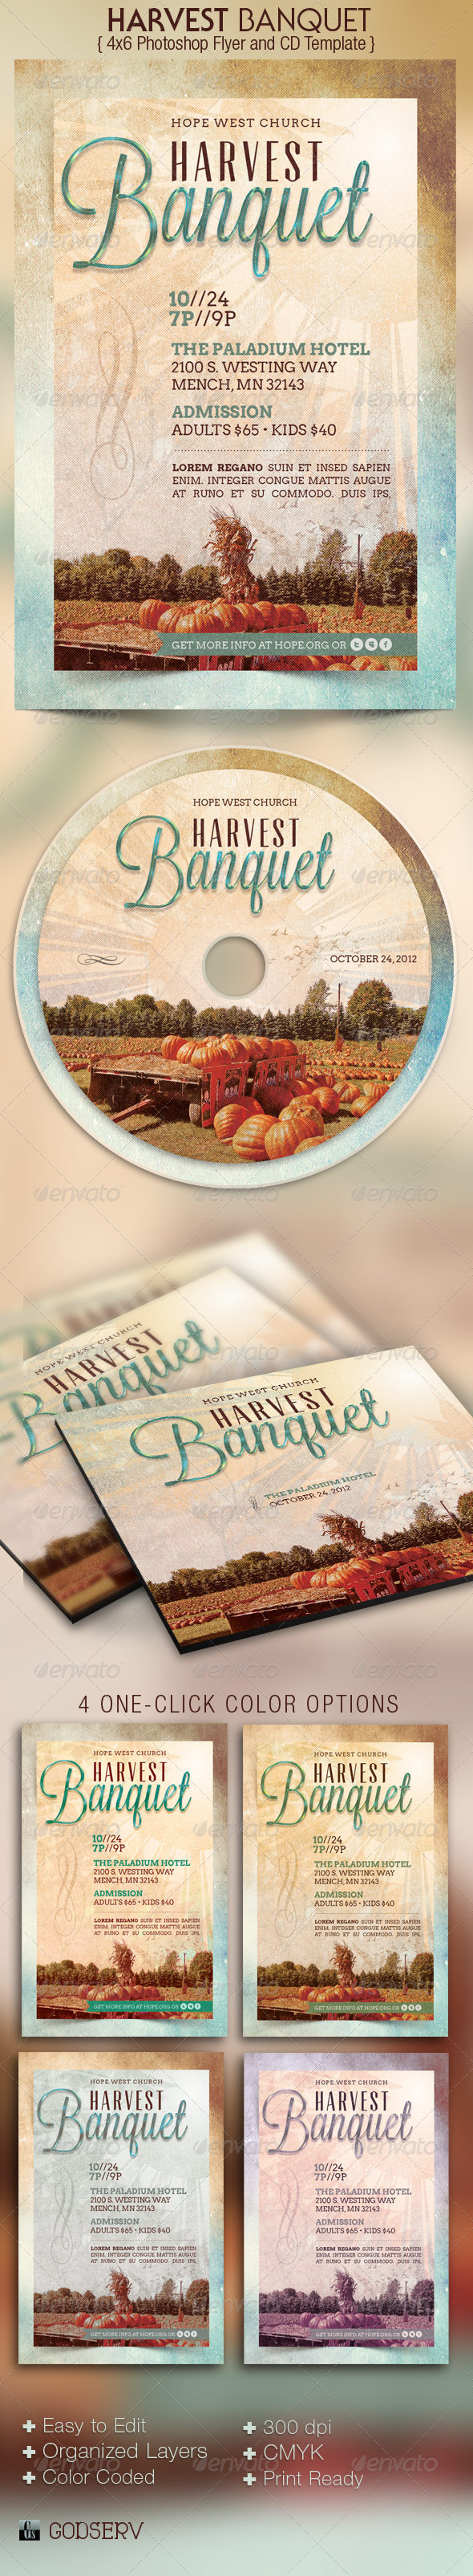 Harvest Banquet Church Flyer and CD Template - Church Flyers